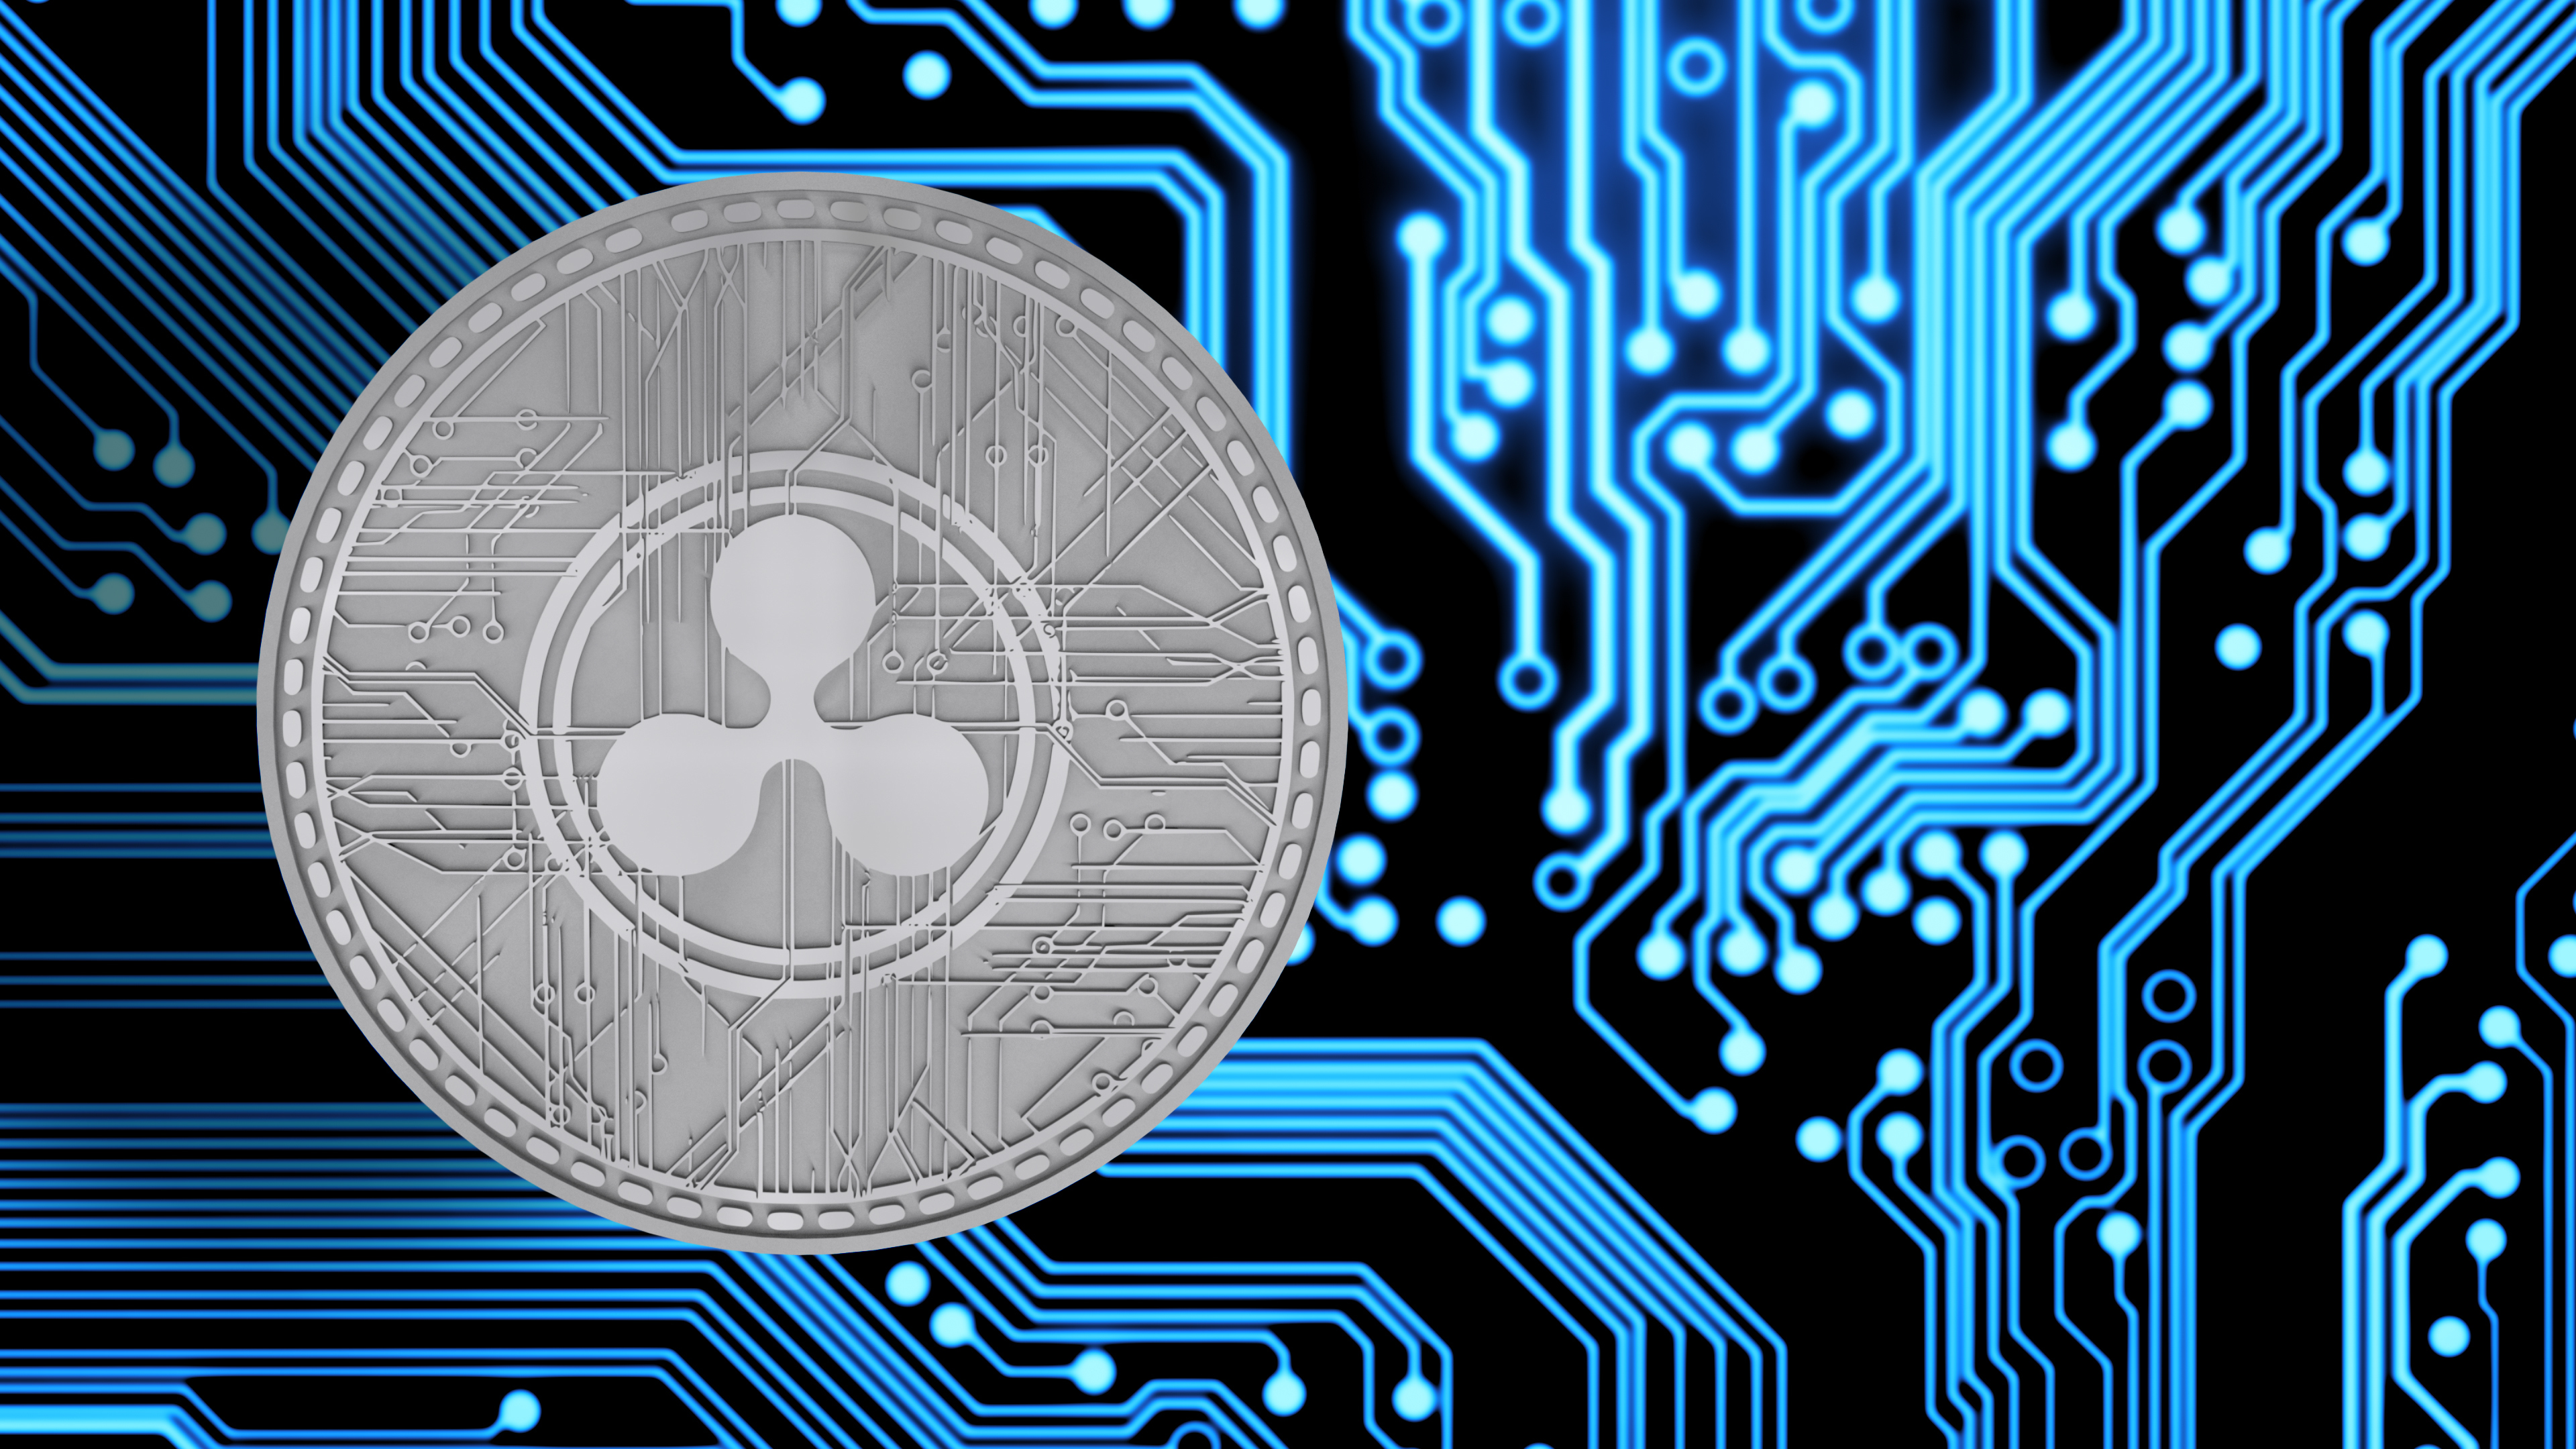 ripple xrp - JPMorgan Coin launches JPM Coin, Ripple direct competitor